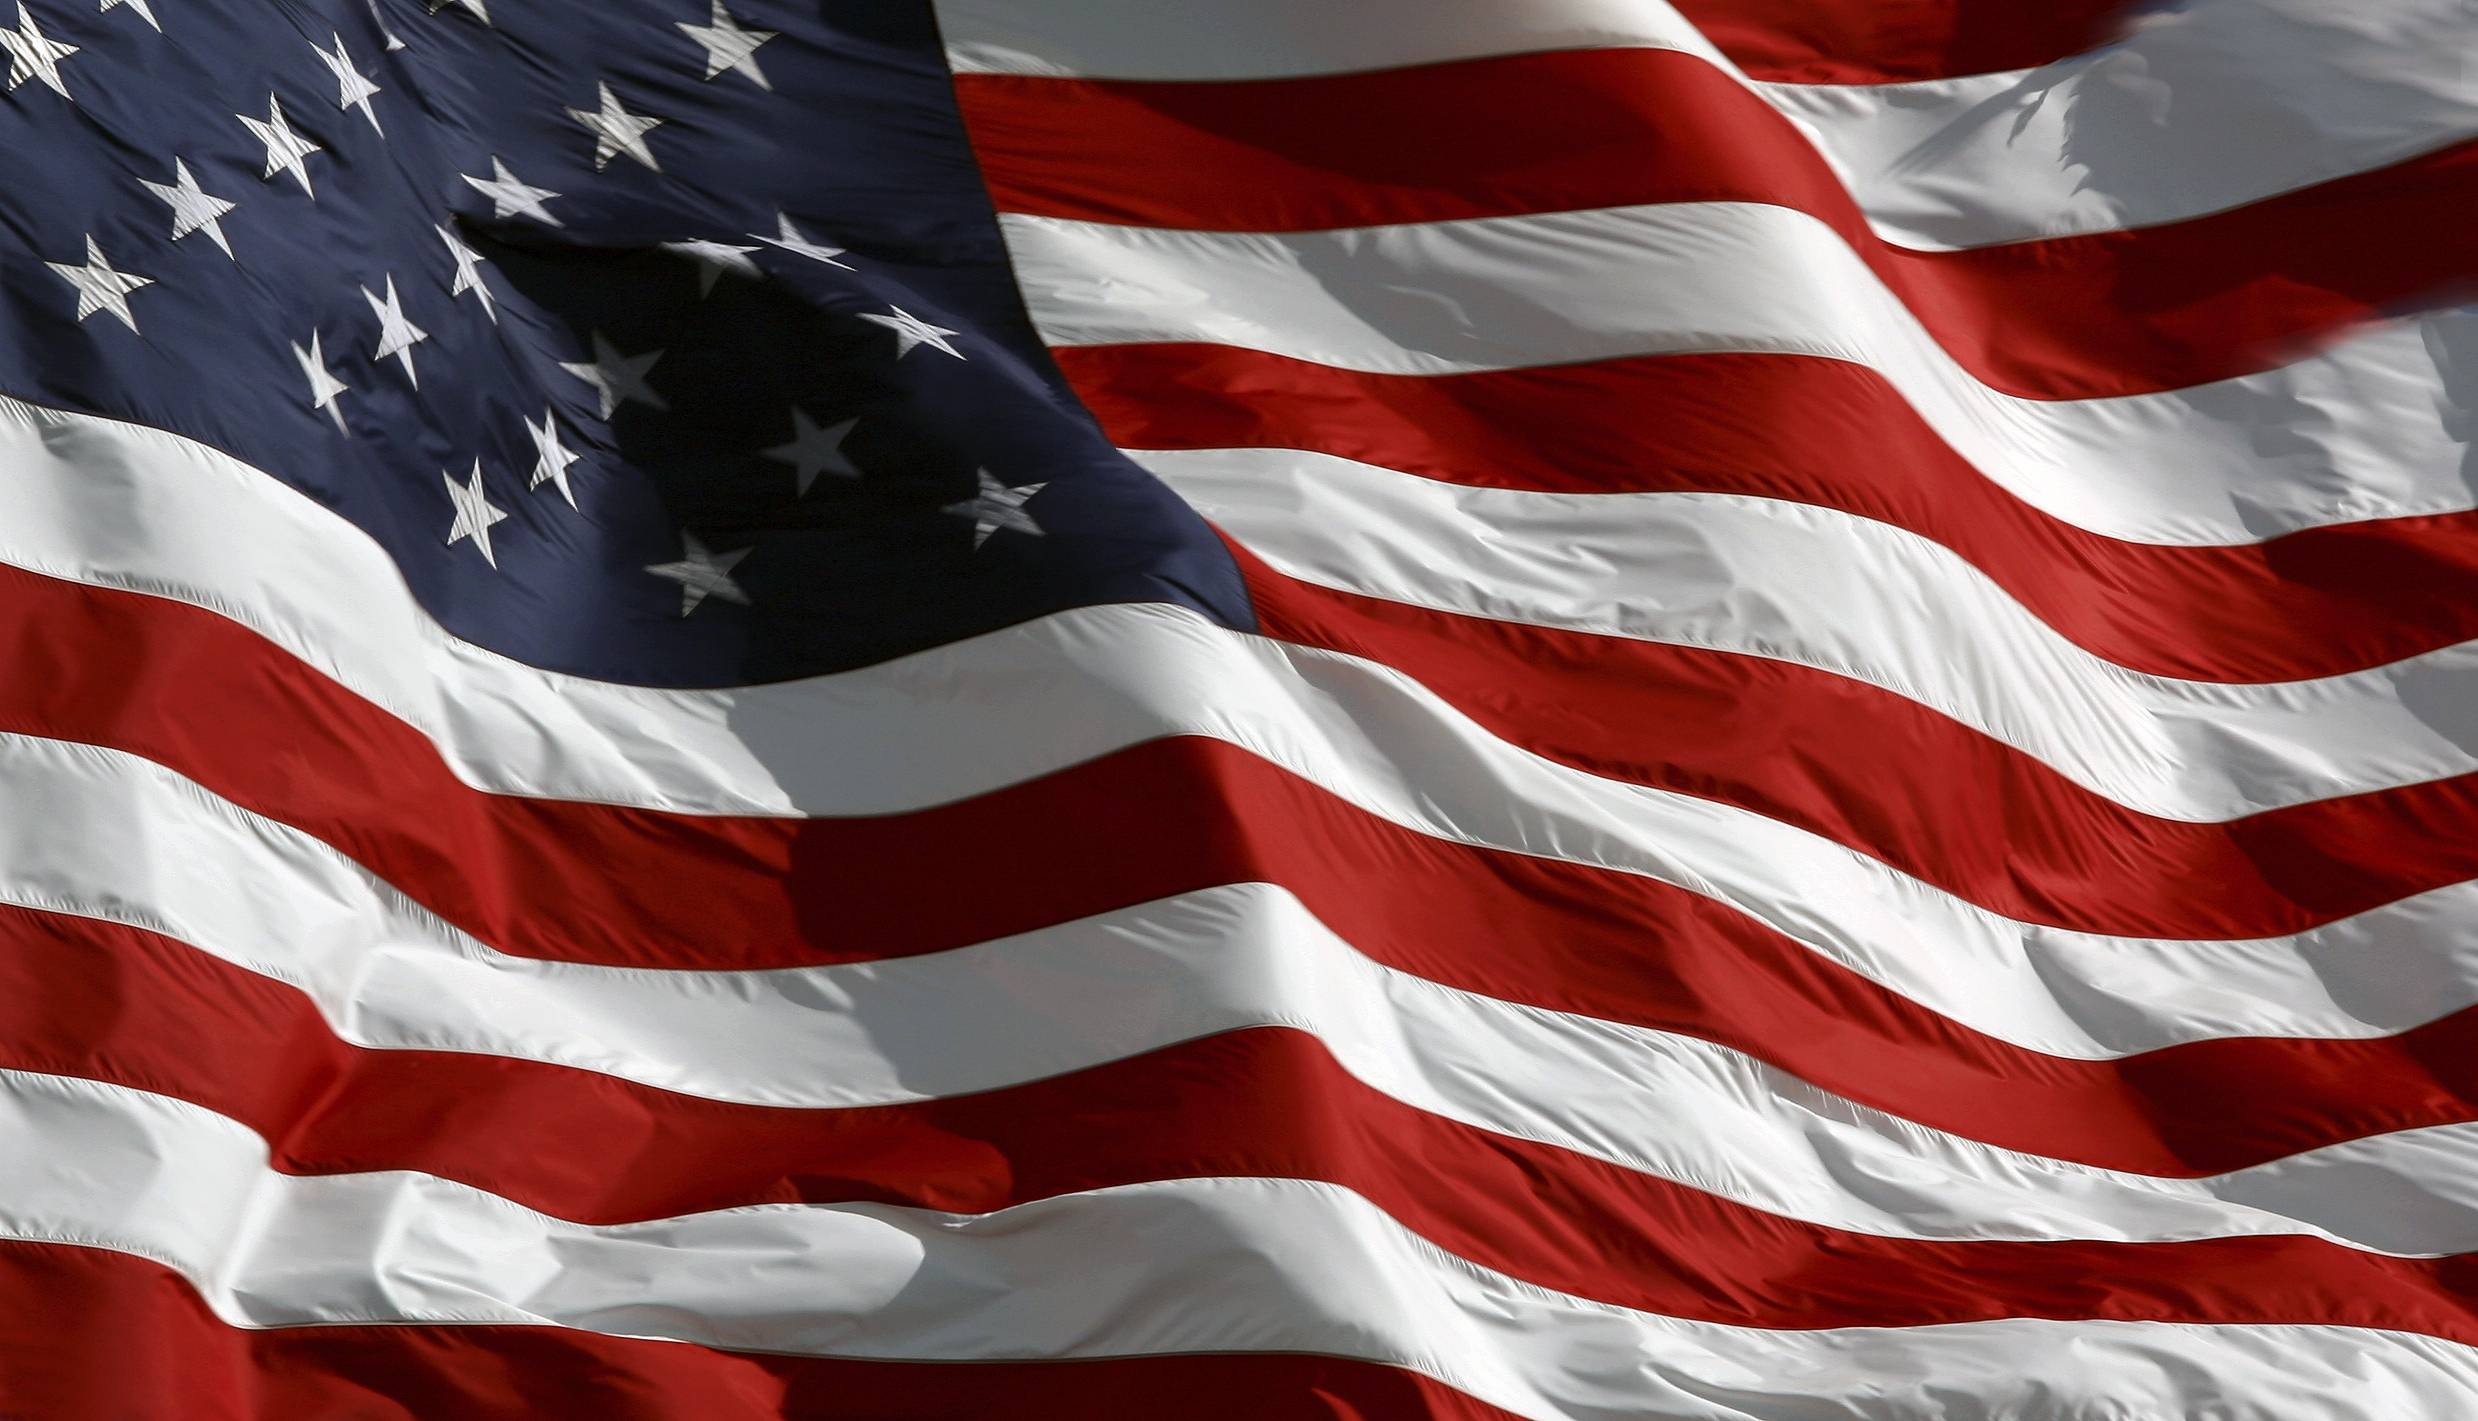 American Flag Backgrounds Wallpapers